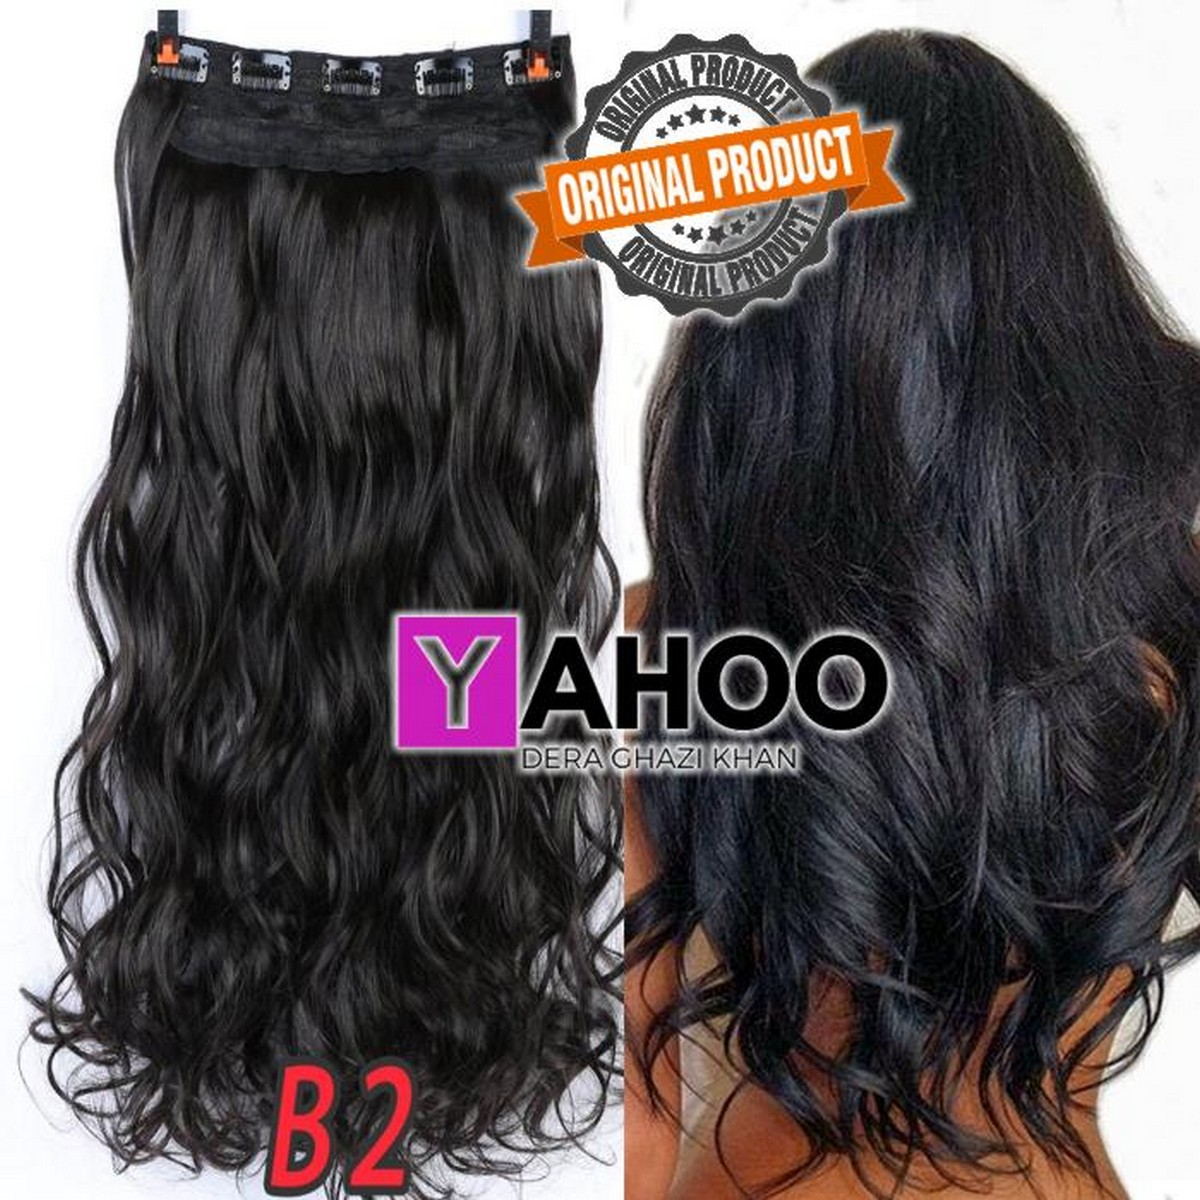 Curls Hair Extension Natural Black 32 Inch High Quality synthetic hair extension Imported quality Touch and Feel Like 100% original Smooth and soft, tangle free, durable, double weft hair extensions will not shed,